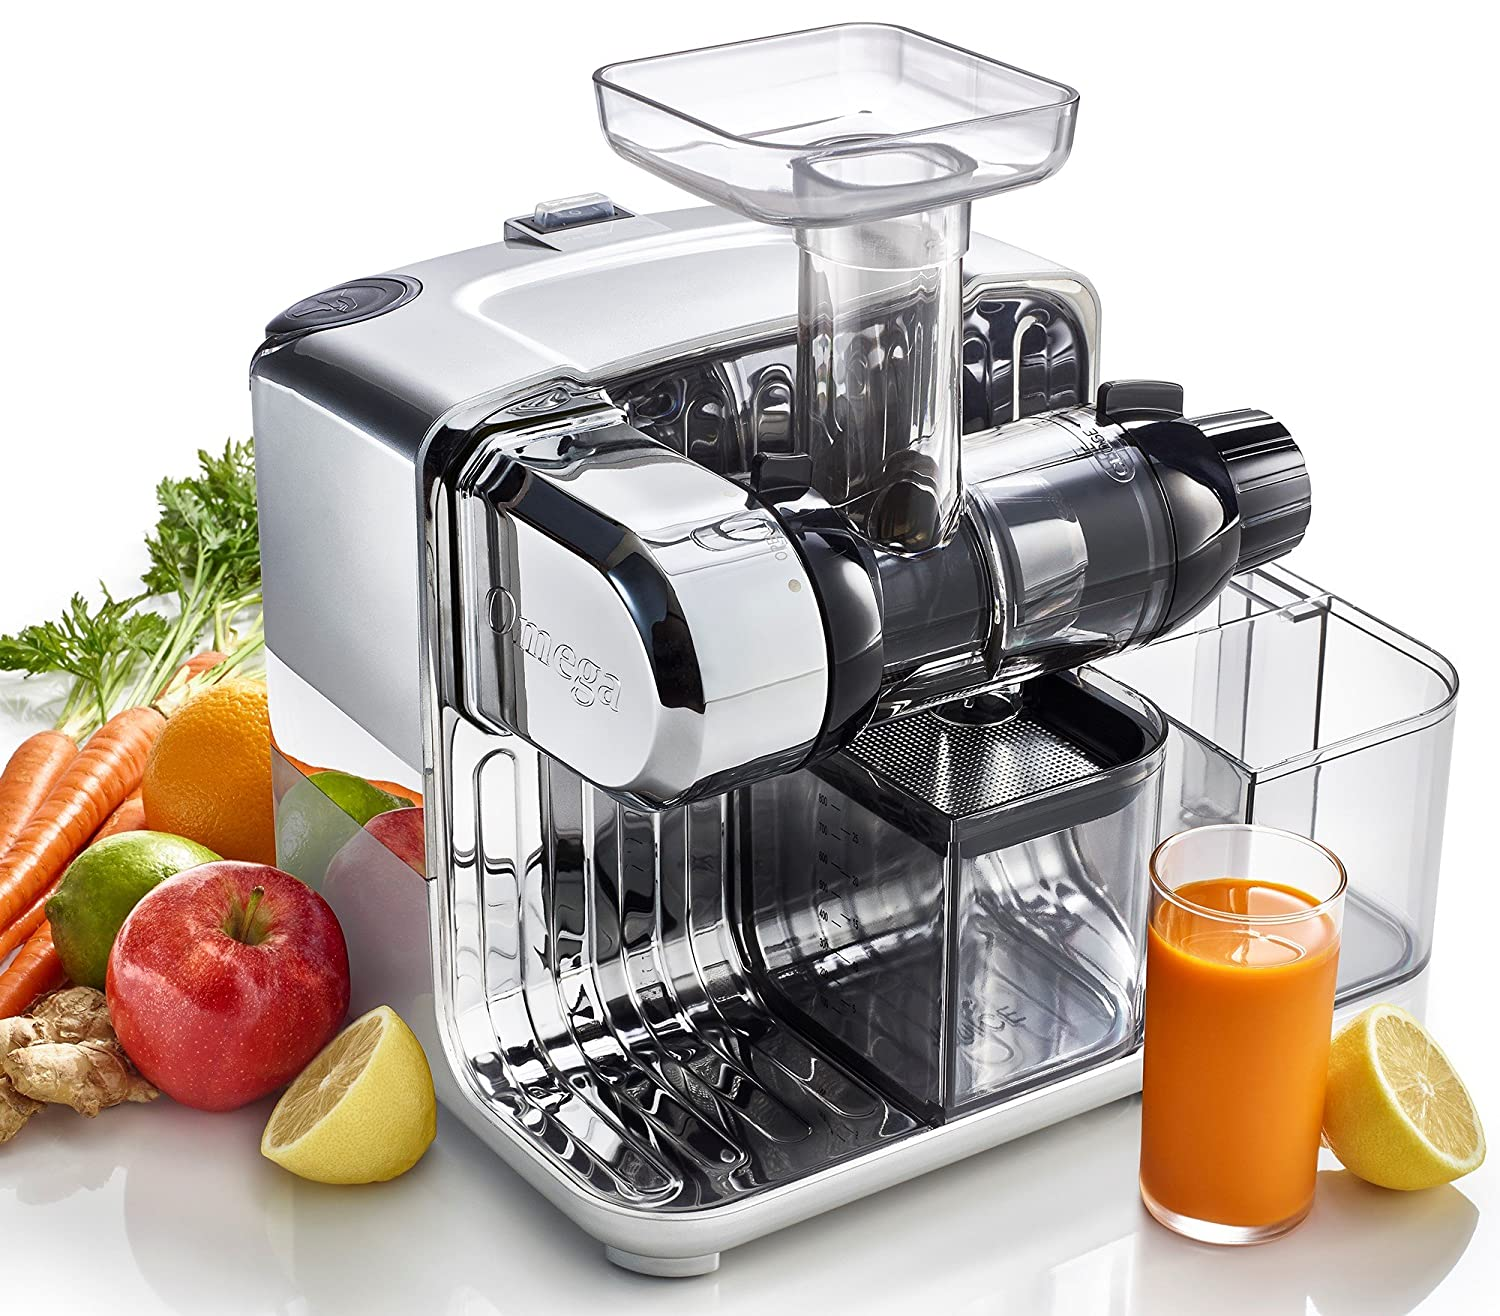 Best Masticating Juicer 2019: Top 5+ Recommended 5